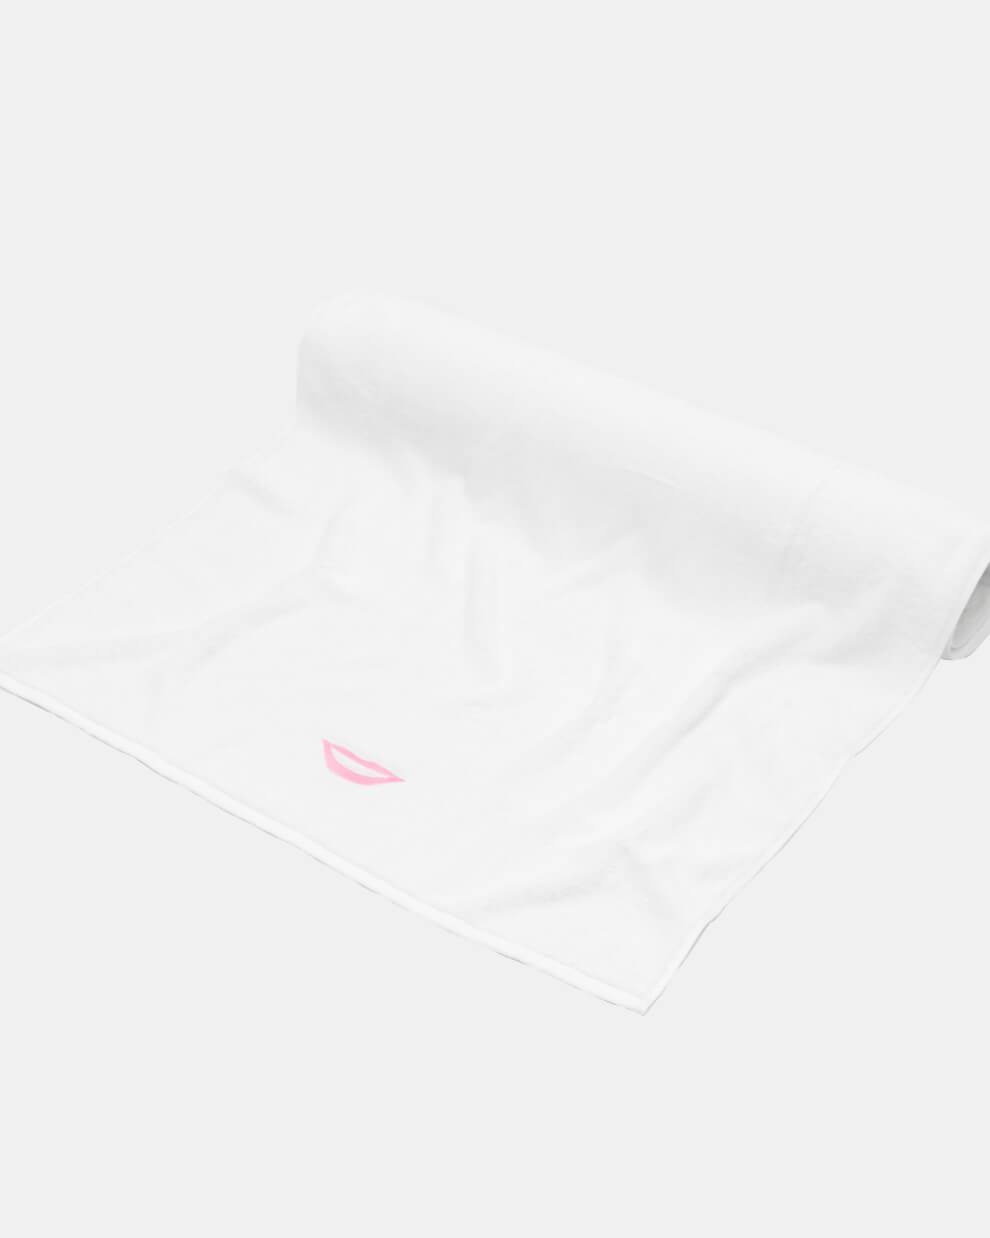 Shop the HiSmile Towel